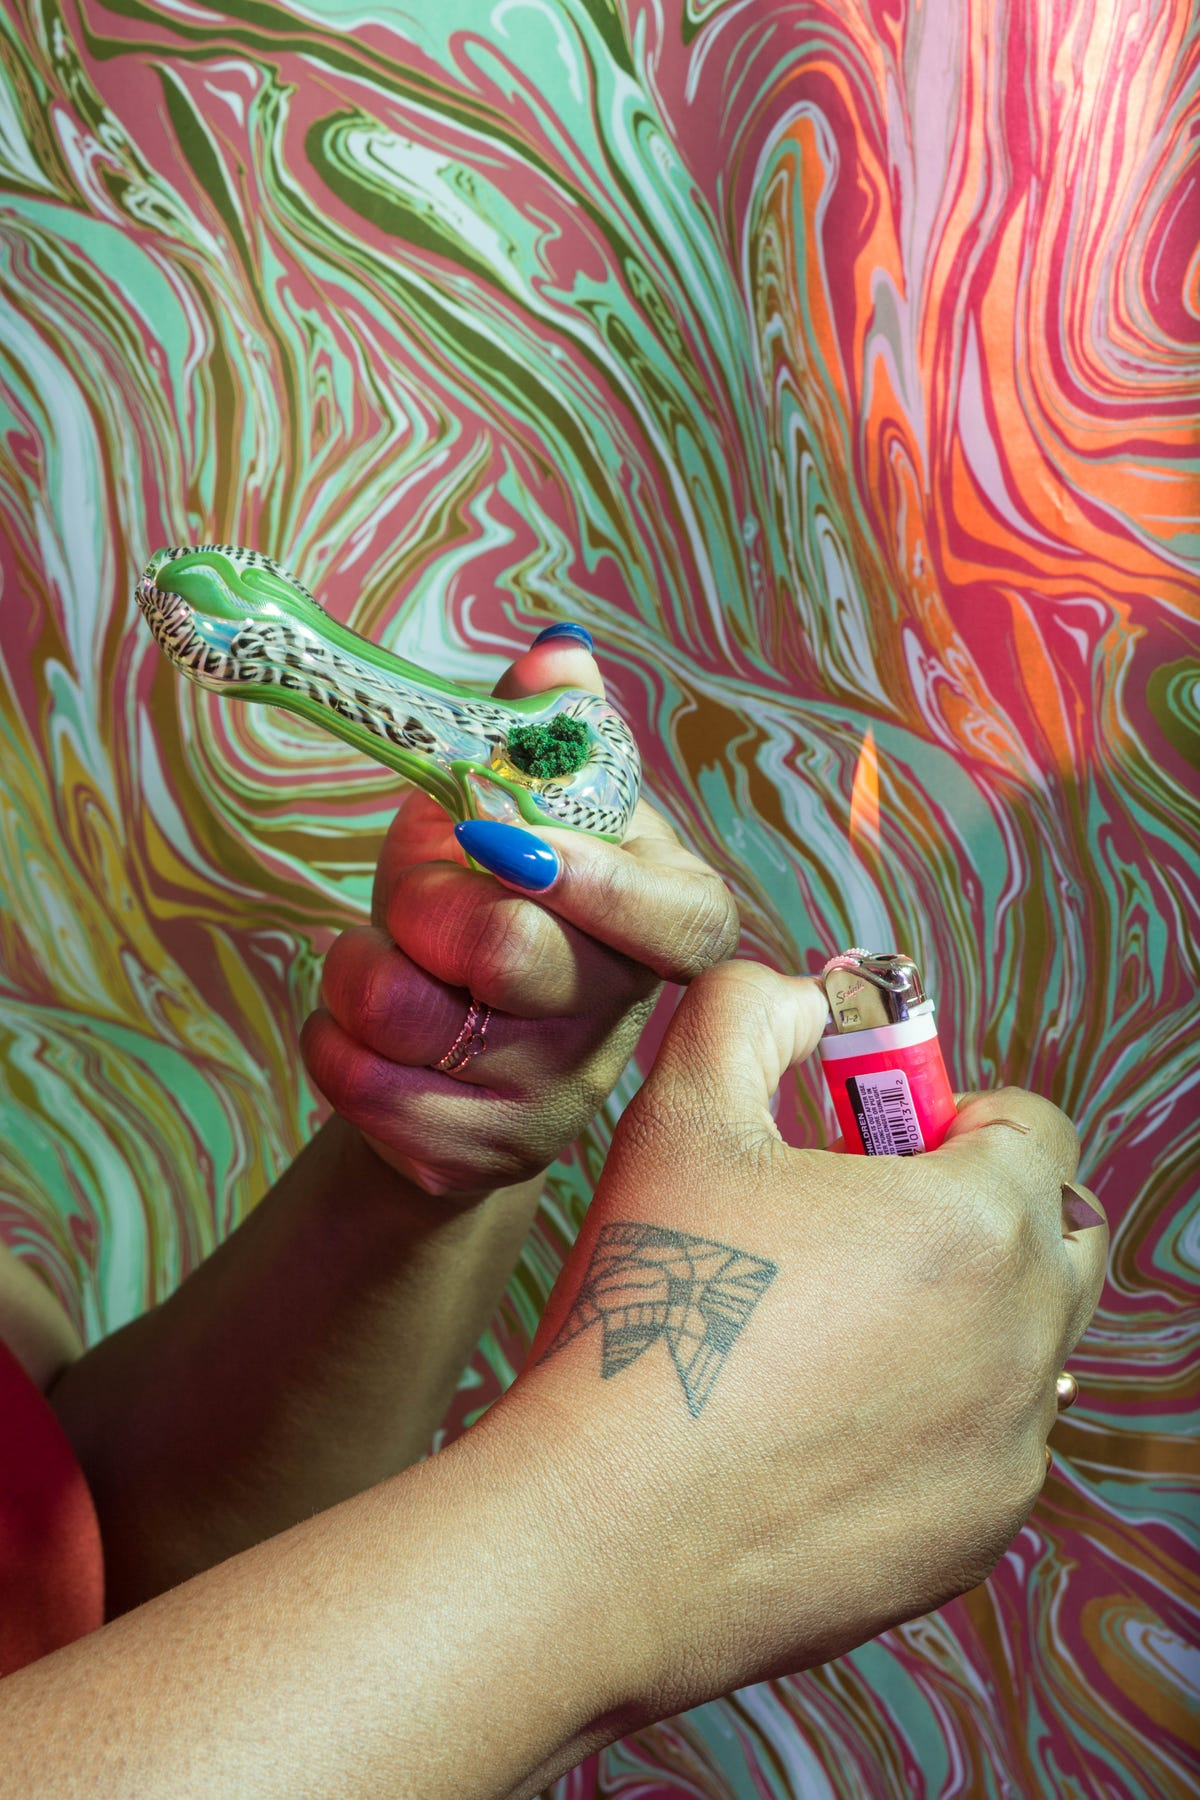 Crossfading Health Effects Of Smoking Weed And Drinking